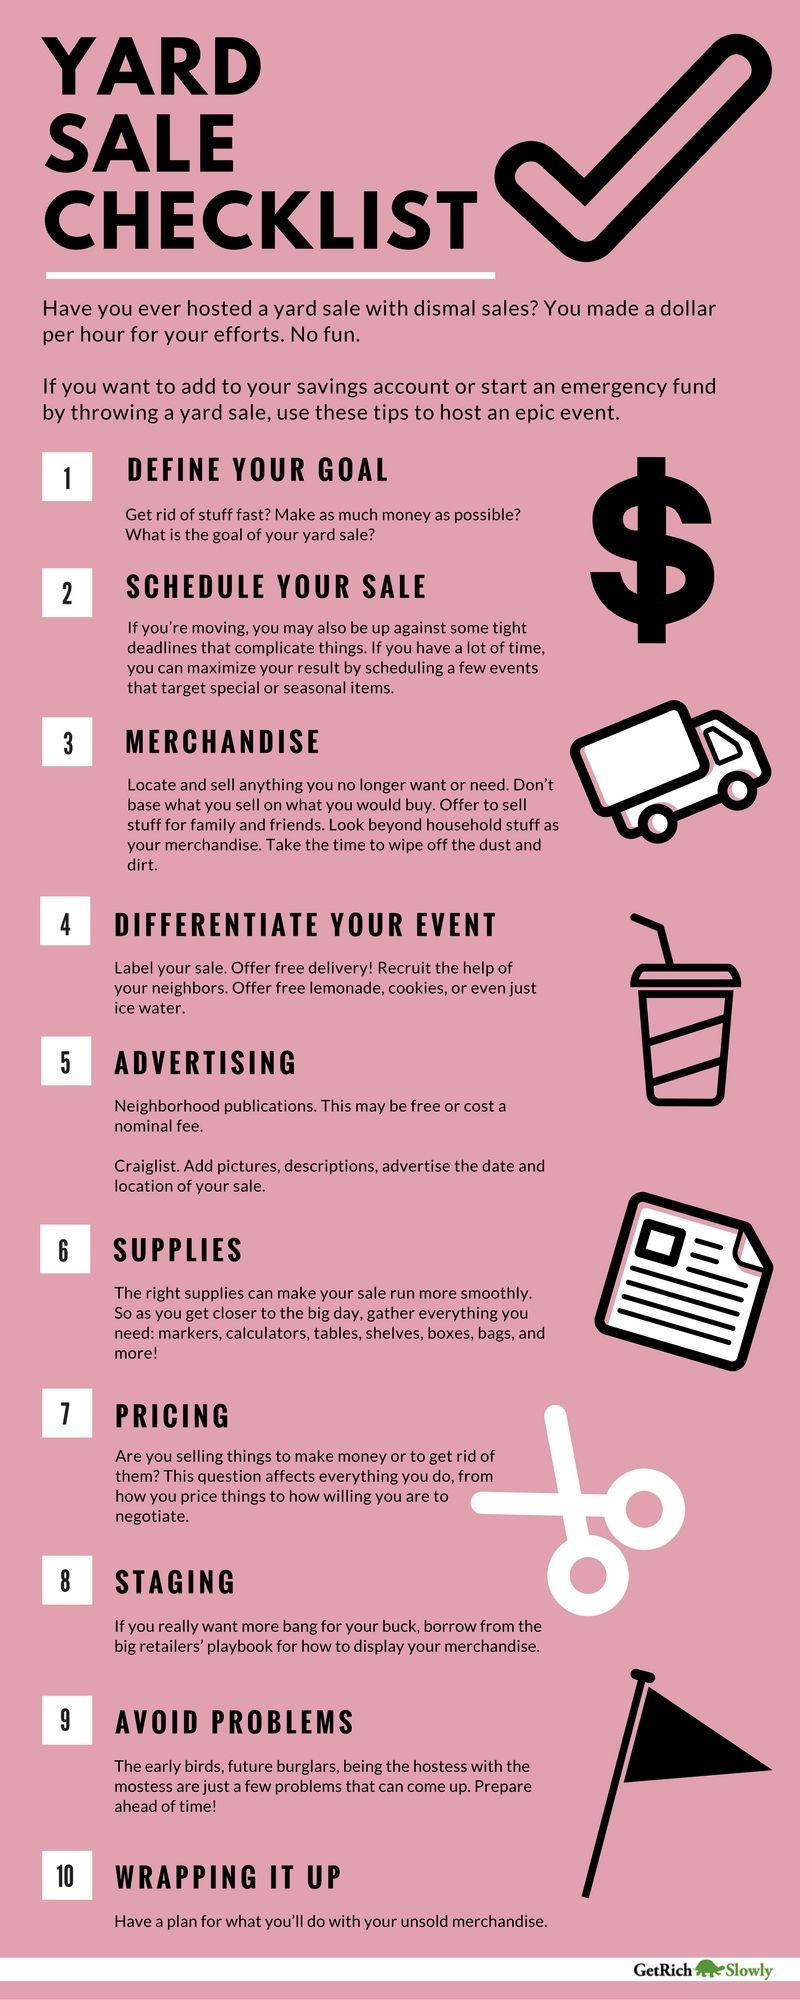 Best yard sale checklist the ultimate guide to garage